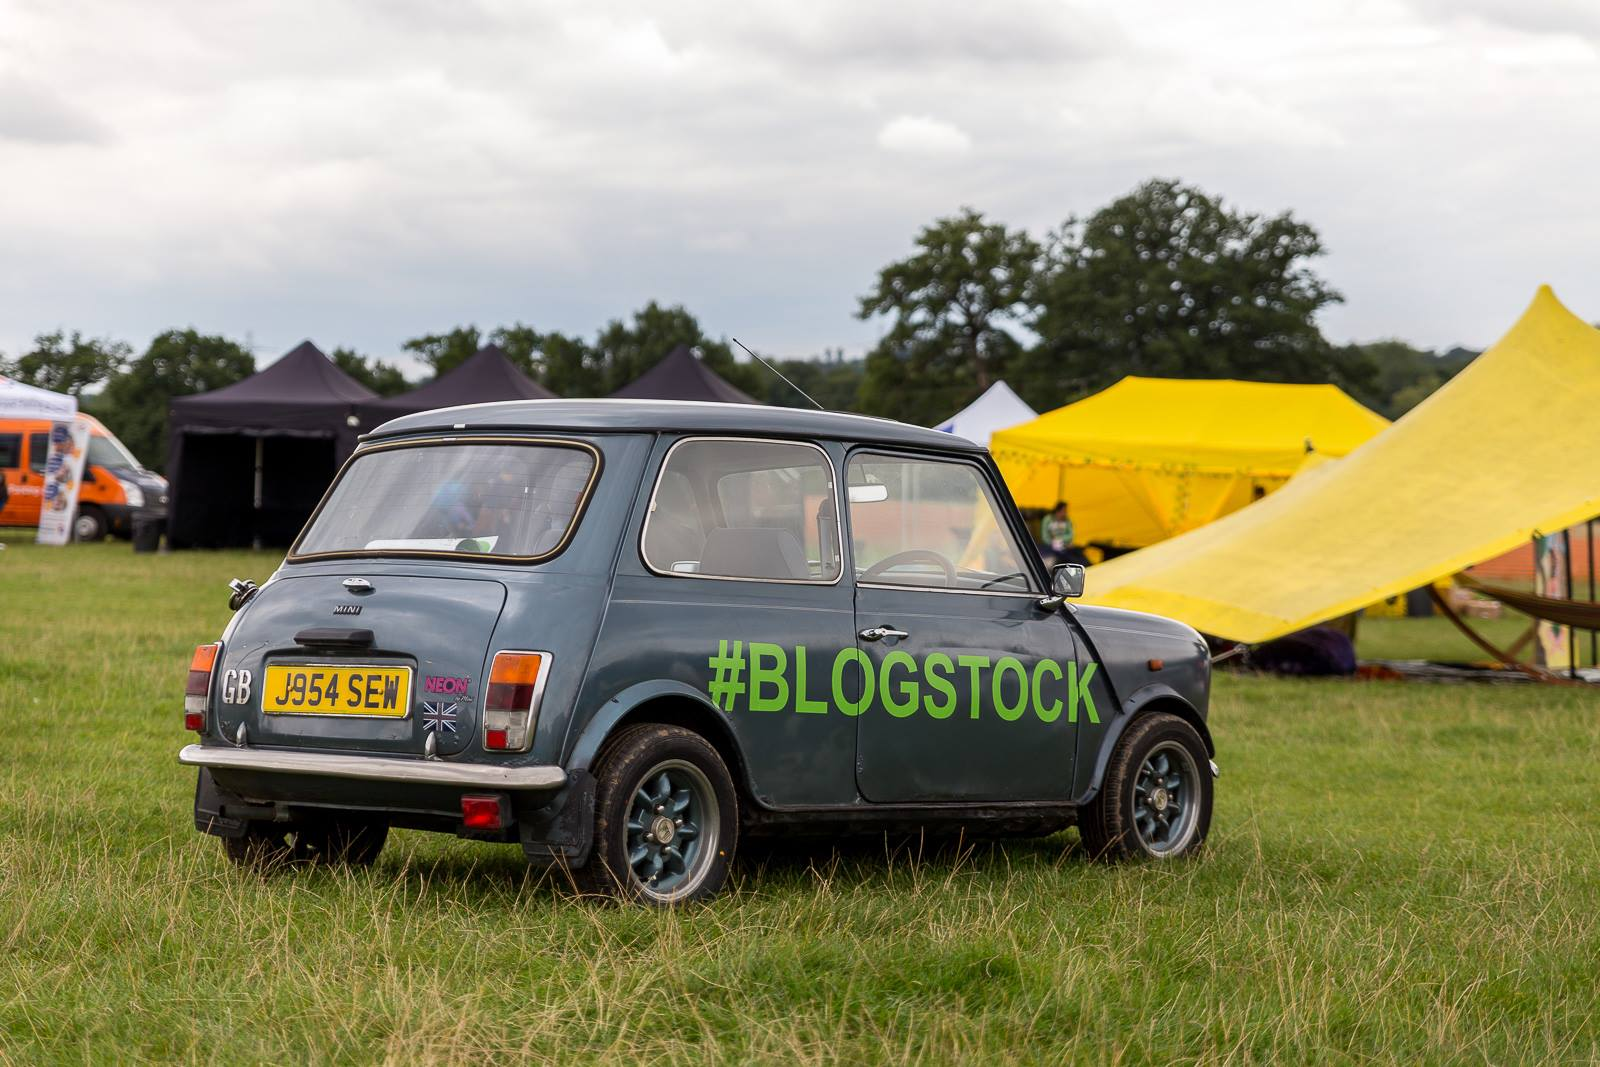 BlogStock car